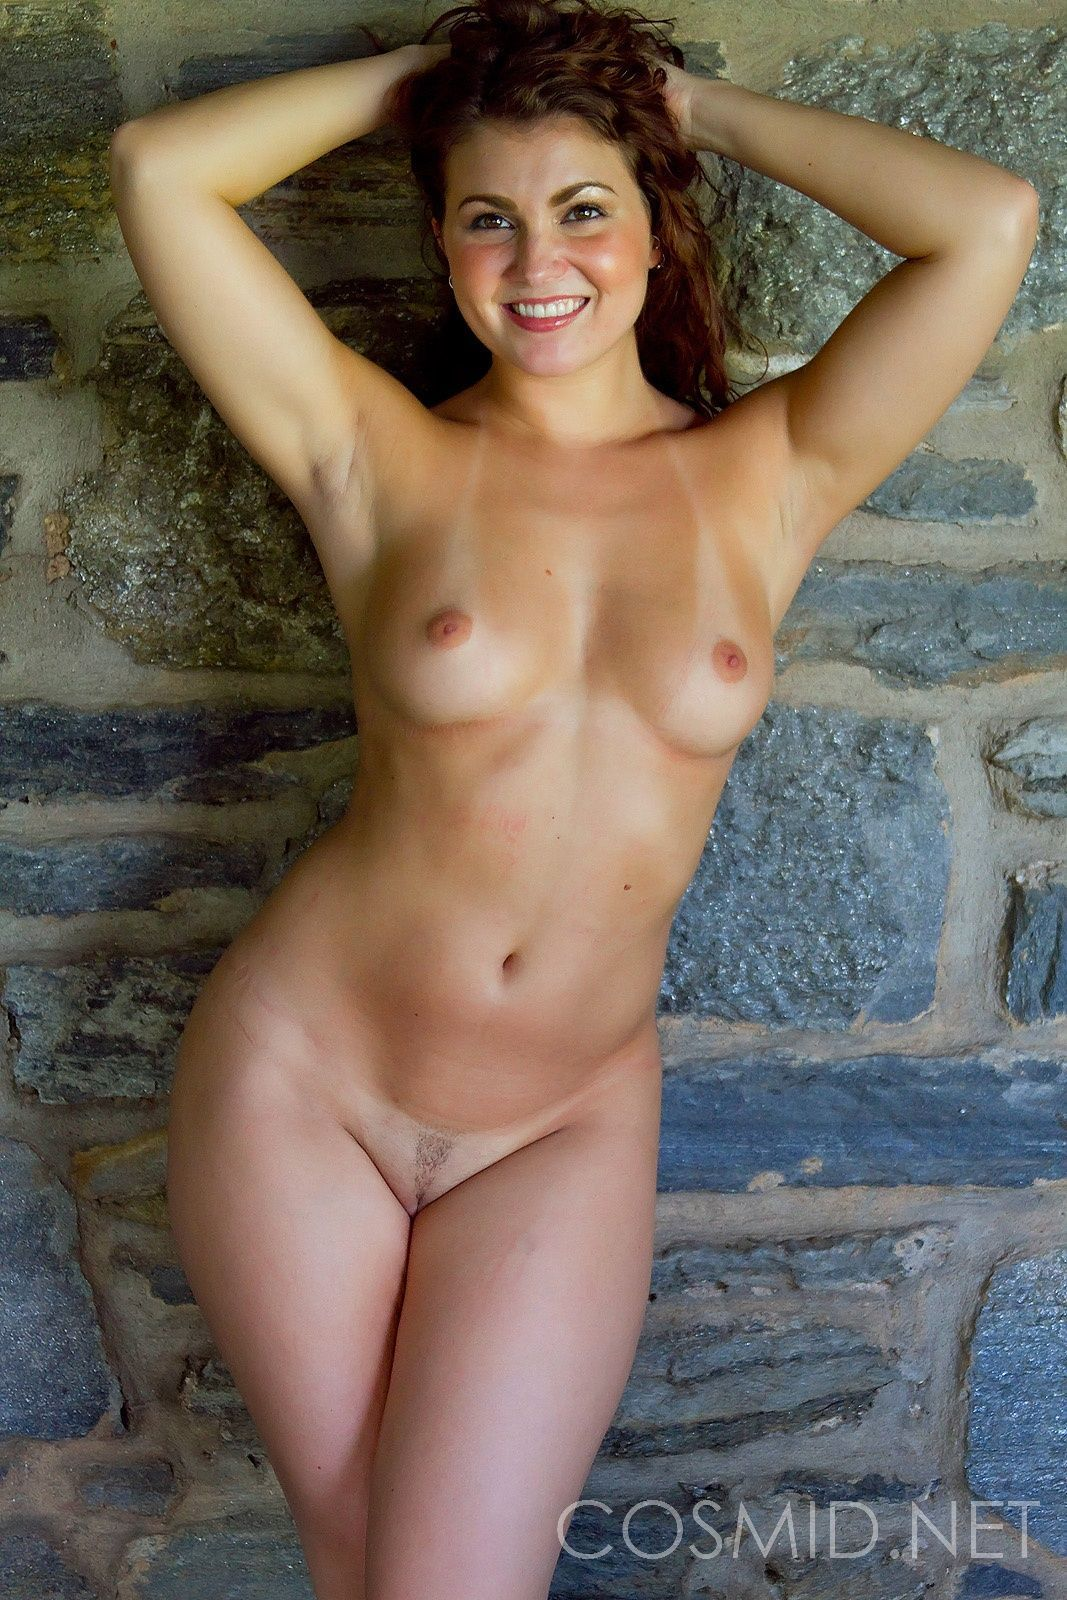 Hanging upside down nude